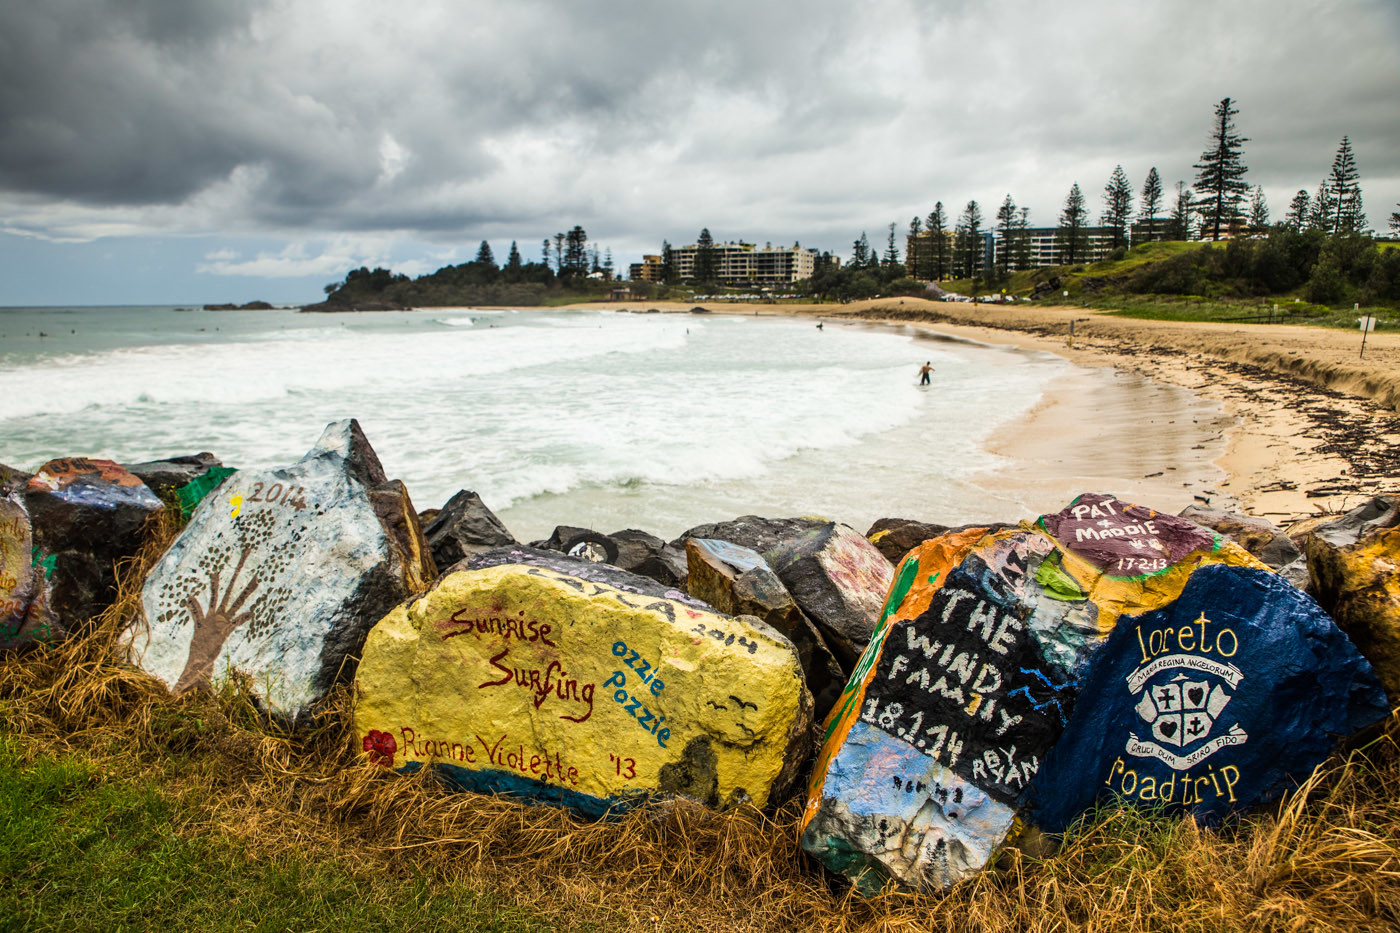 Best Port Macquarie beaches in Australia